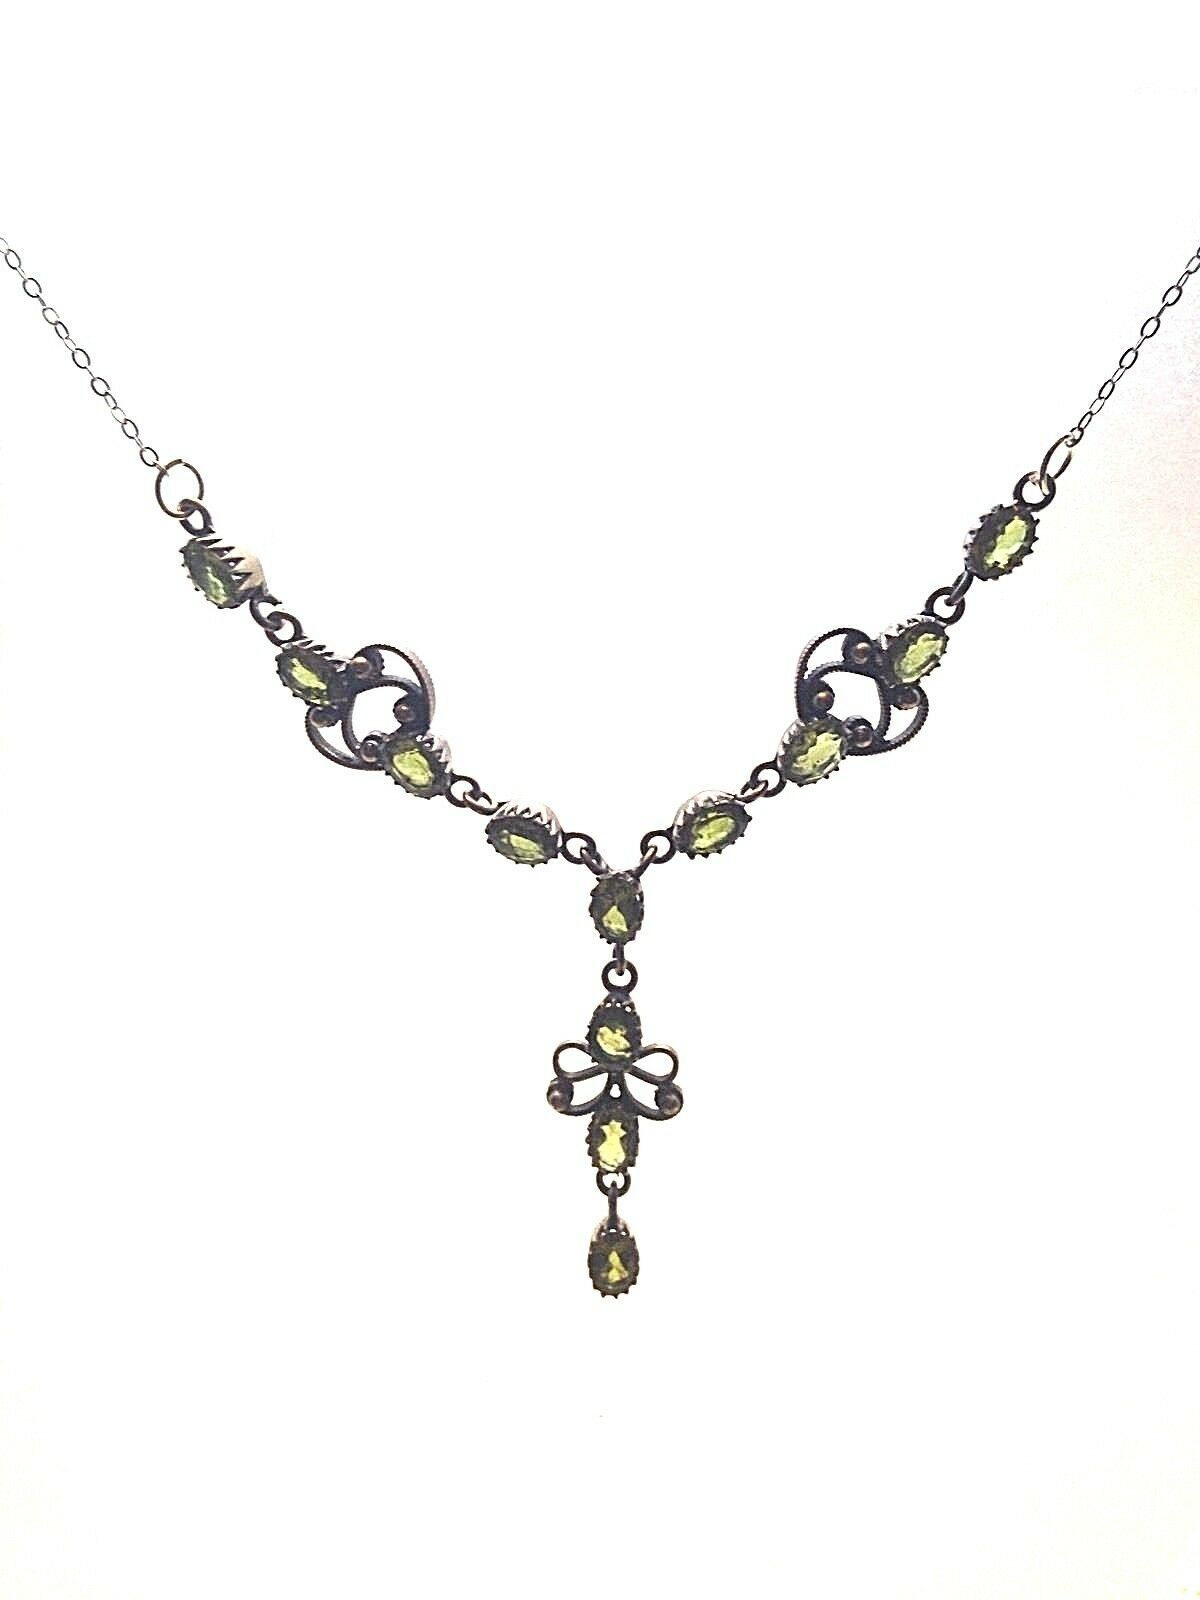 Vintage 925 Sterling Silver Genuine Green Peridot Y Choker Necklace